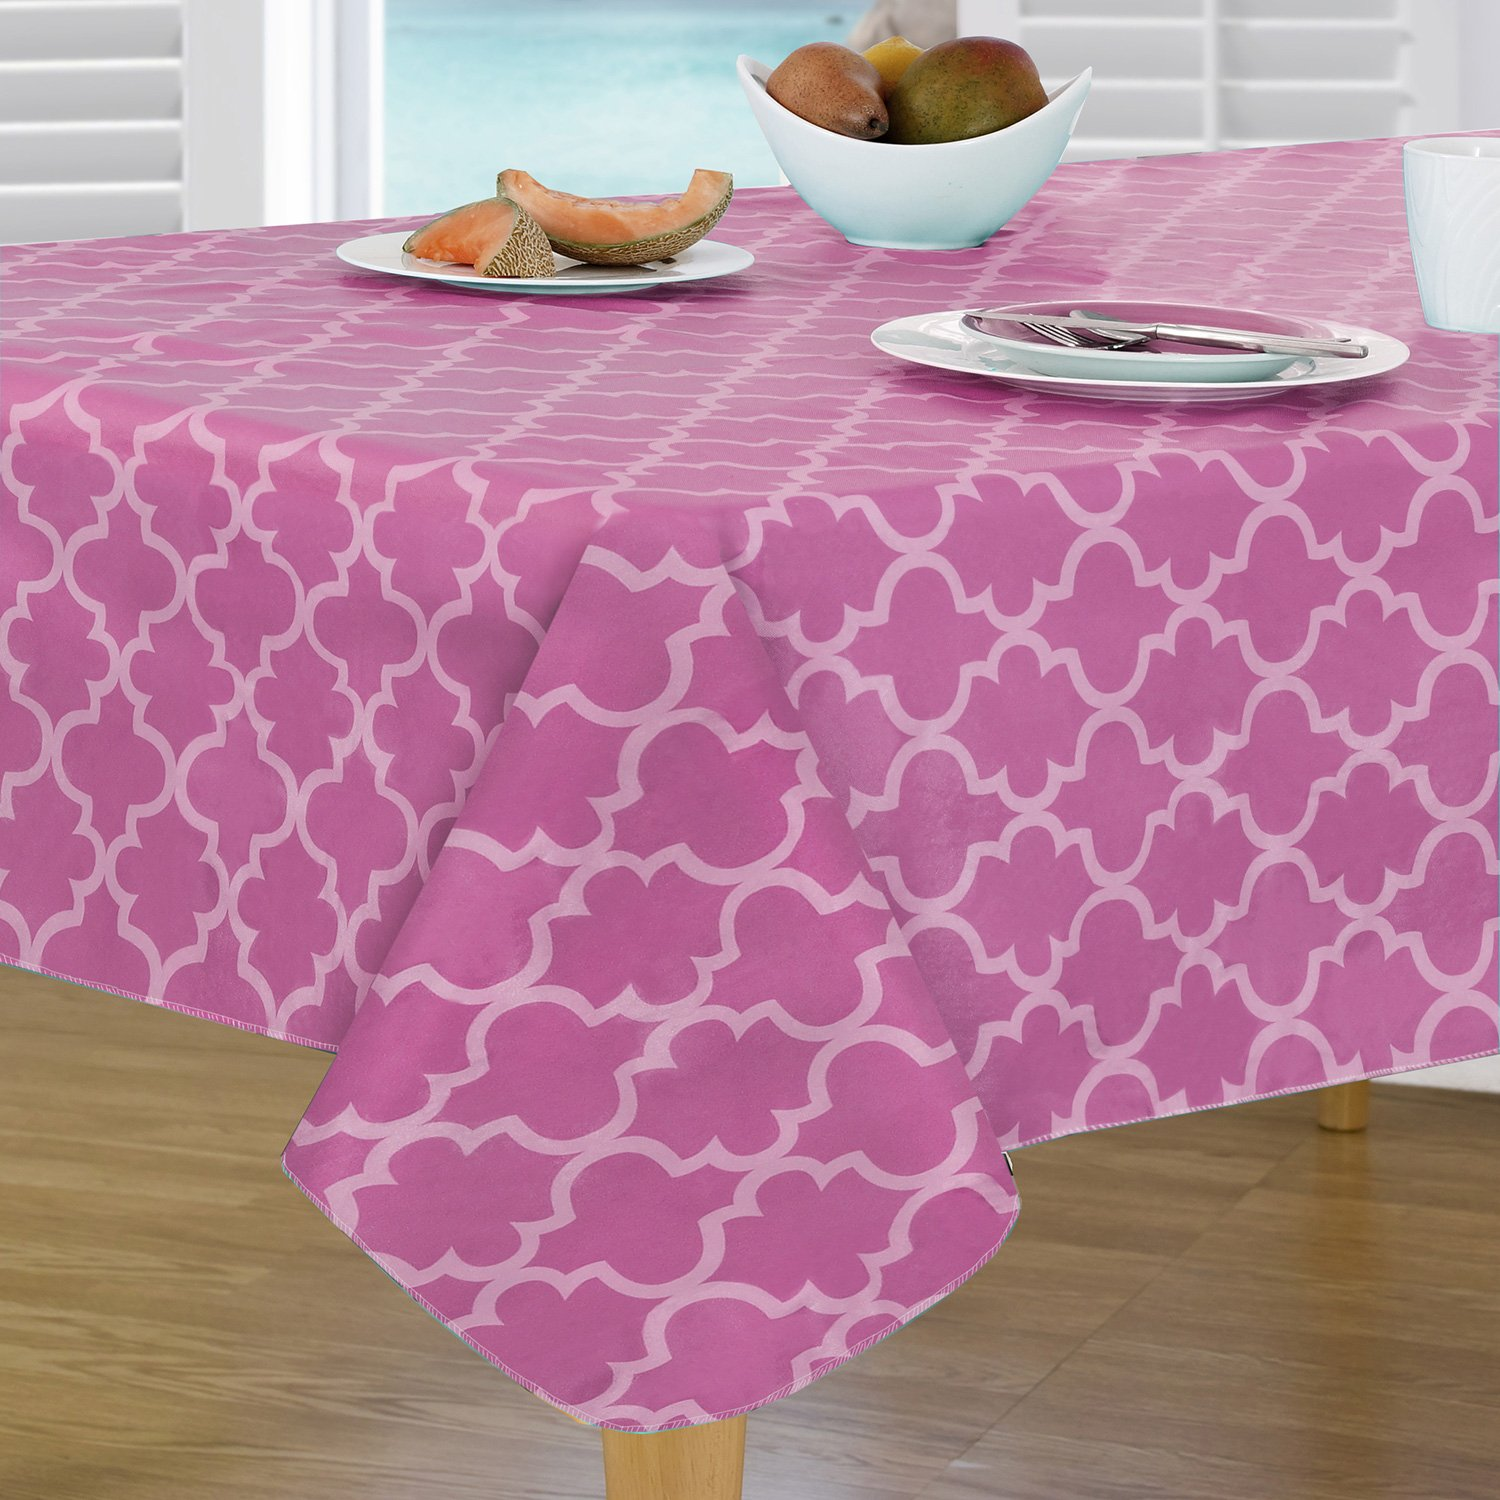 Everyday Luxuries by Newbridge Peyton Geo Flannel Backed Indoor Outdoor Vinyl Table Linens, Tablecloth 70-Inch Round Tablecloth, Bright Pink